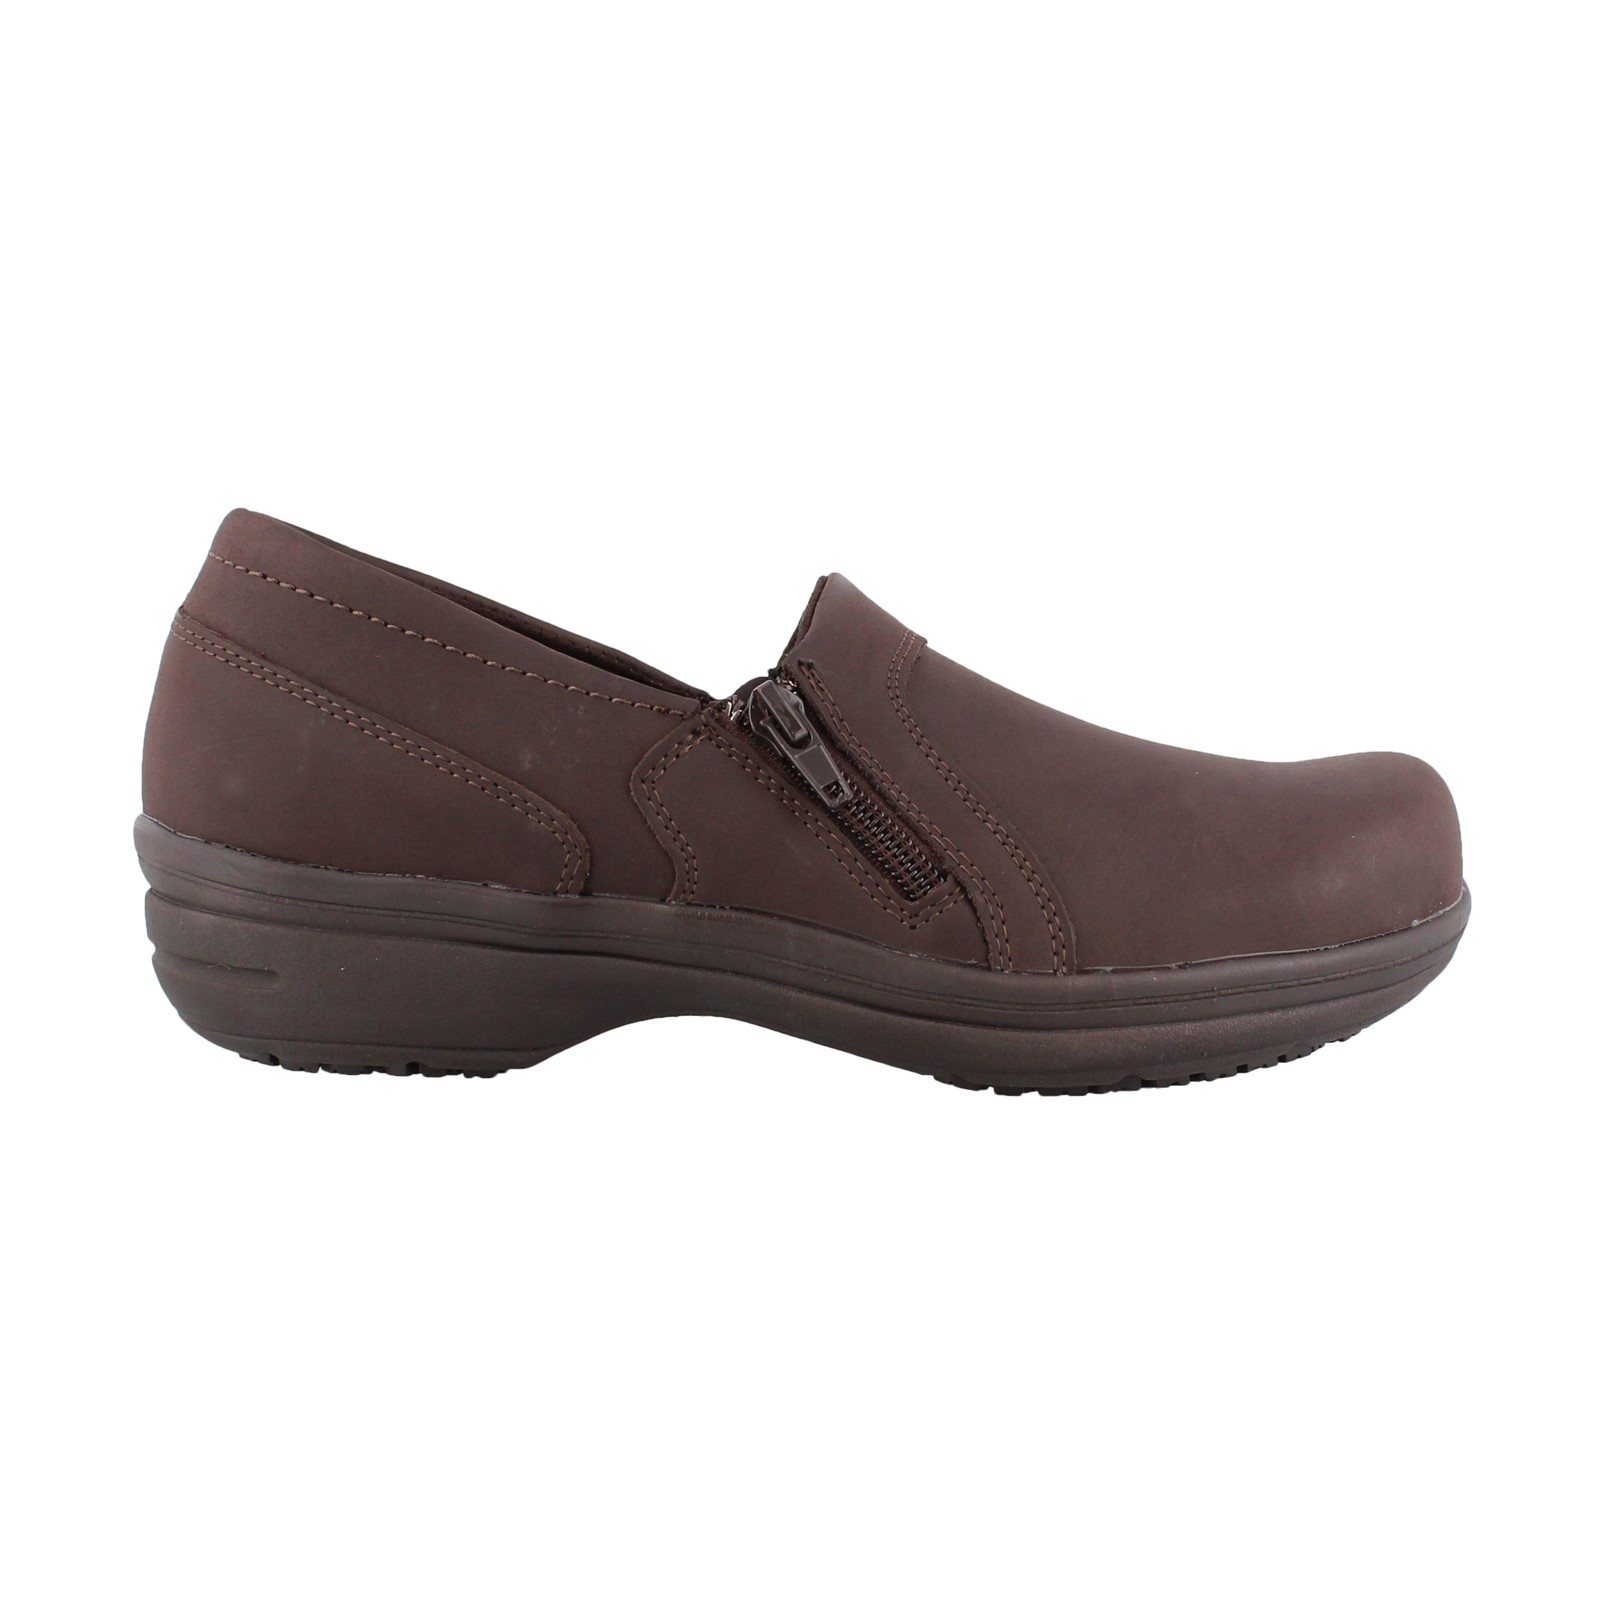 Women's Easy Works by Easy Street, Bentley Slip on Work Shoes